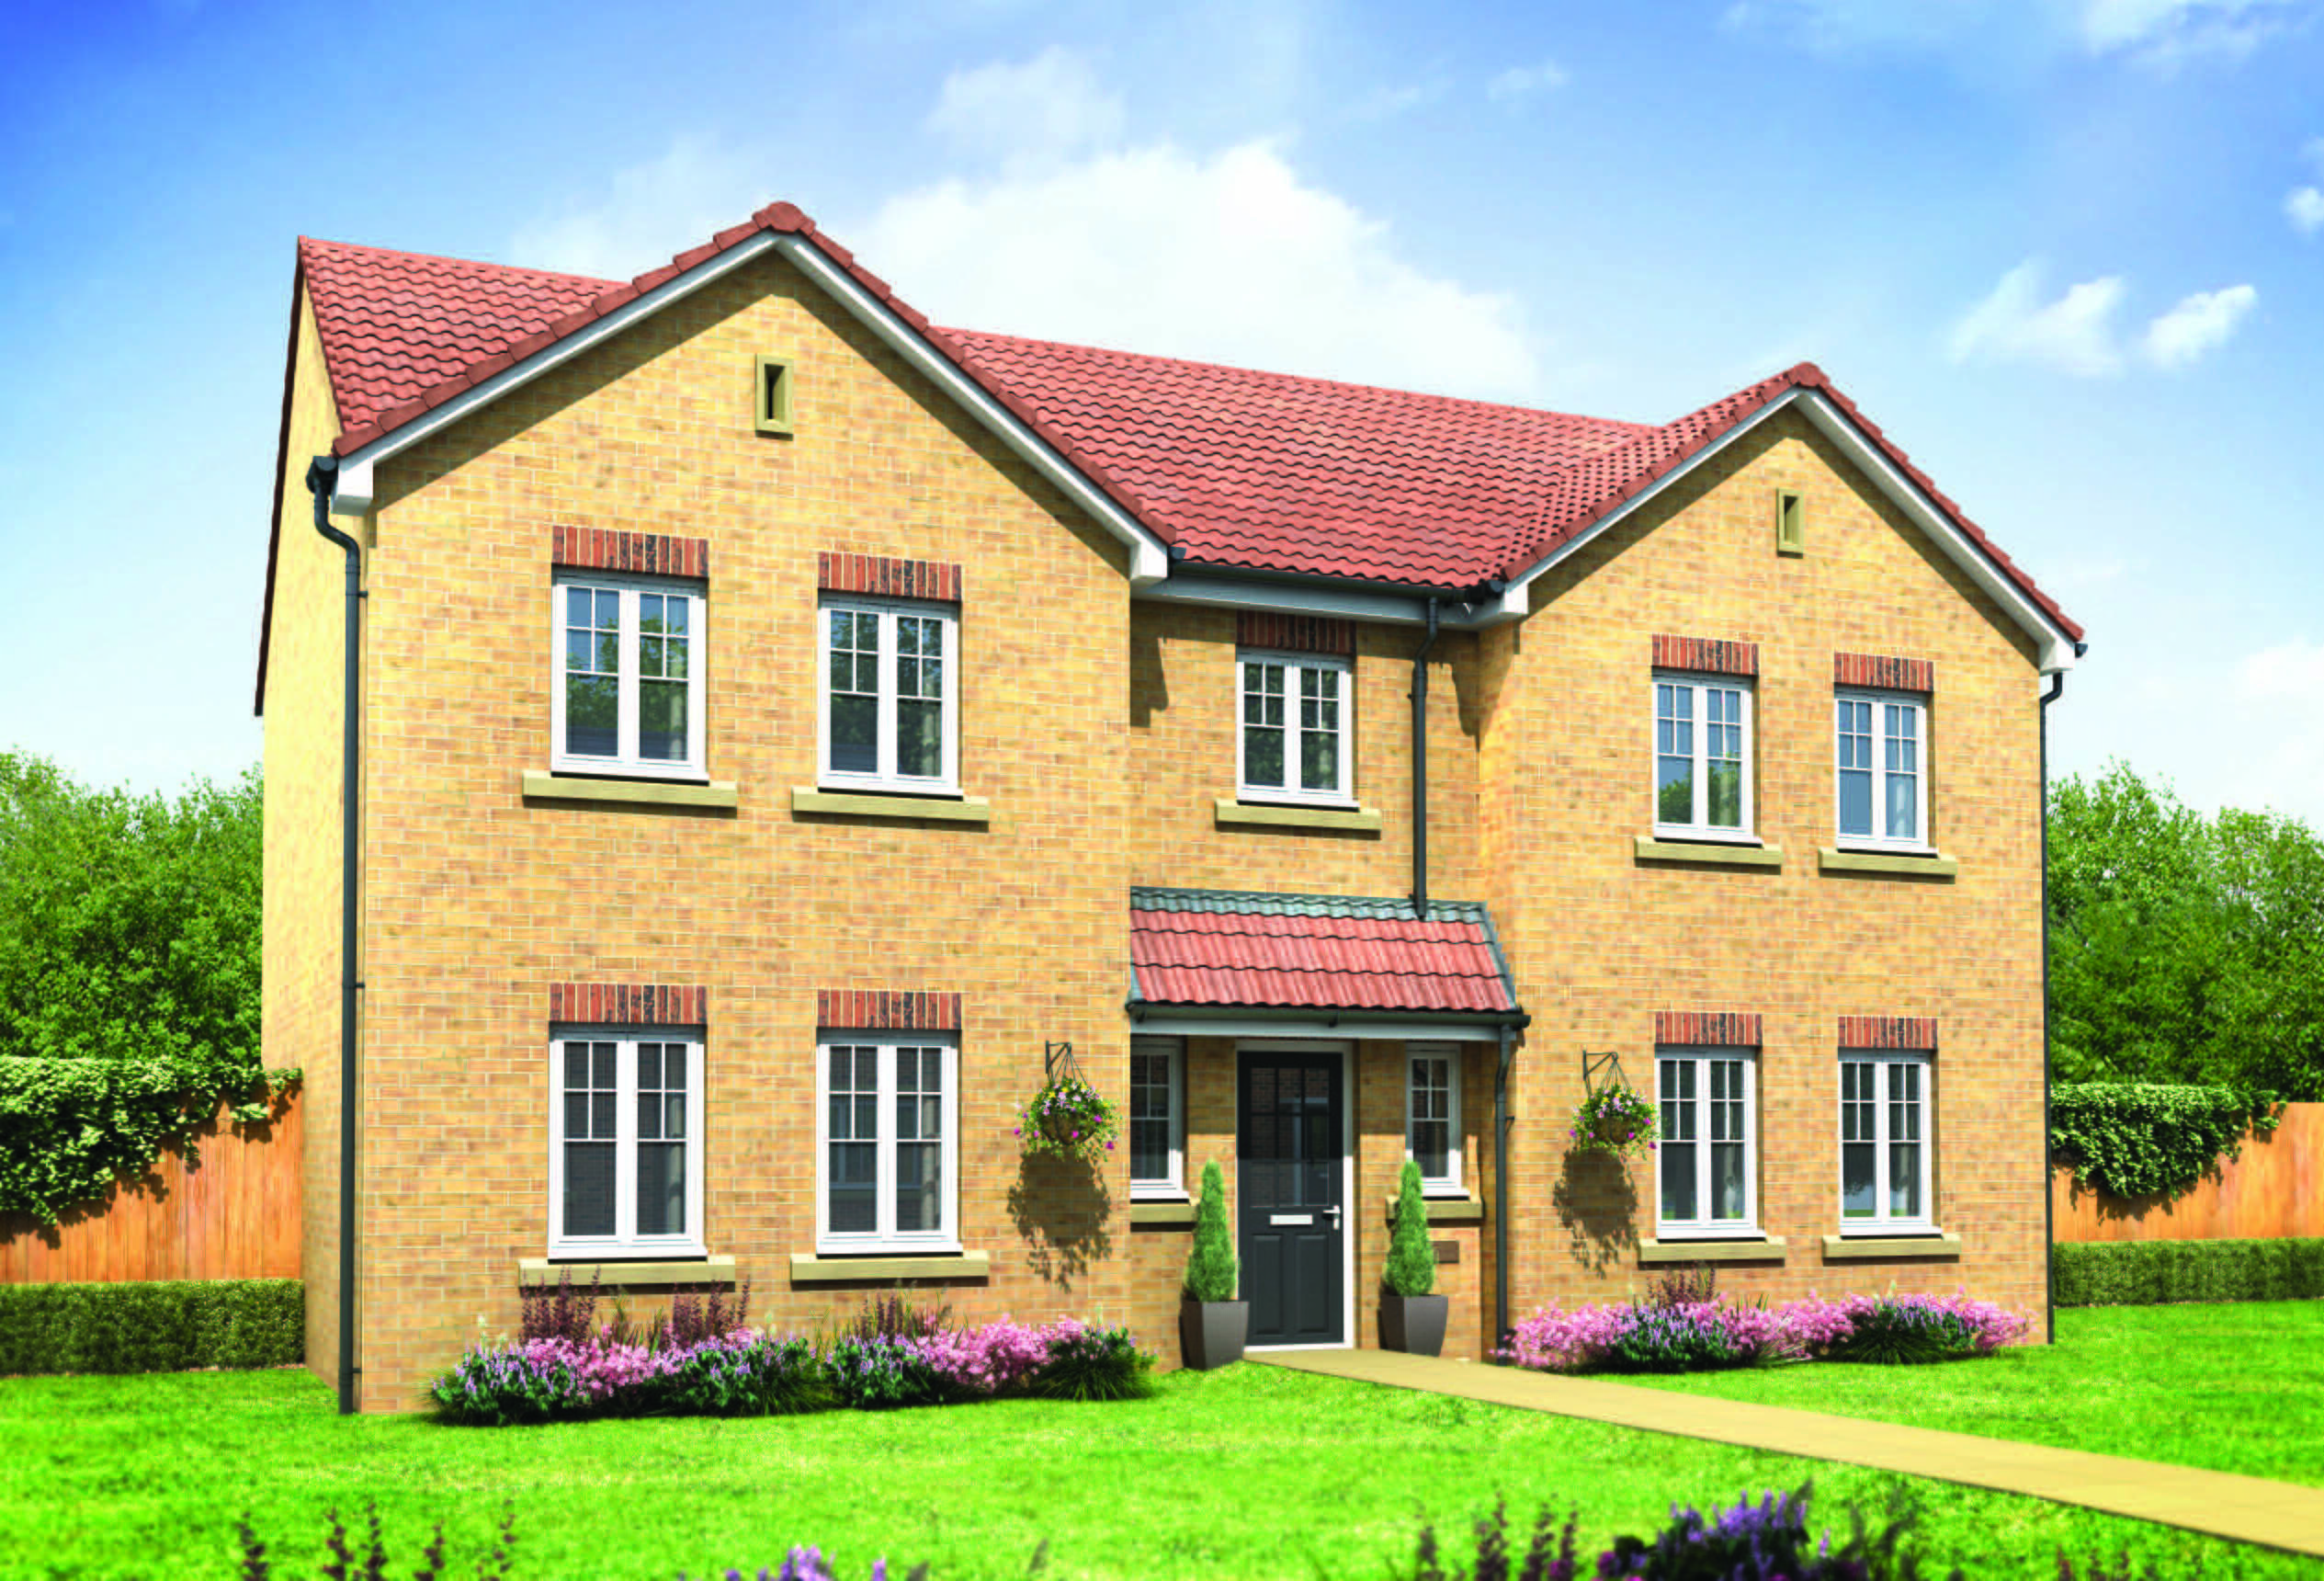 Best Houses For Sale In Swindon Wiltshire Sn3 6Ab Badbury Park With Pictures